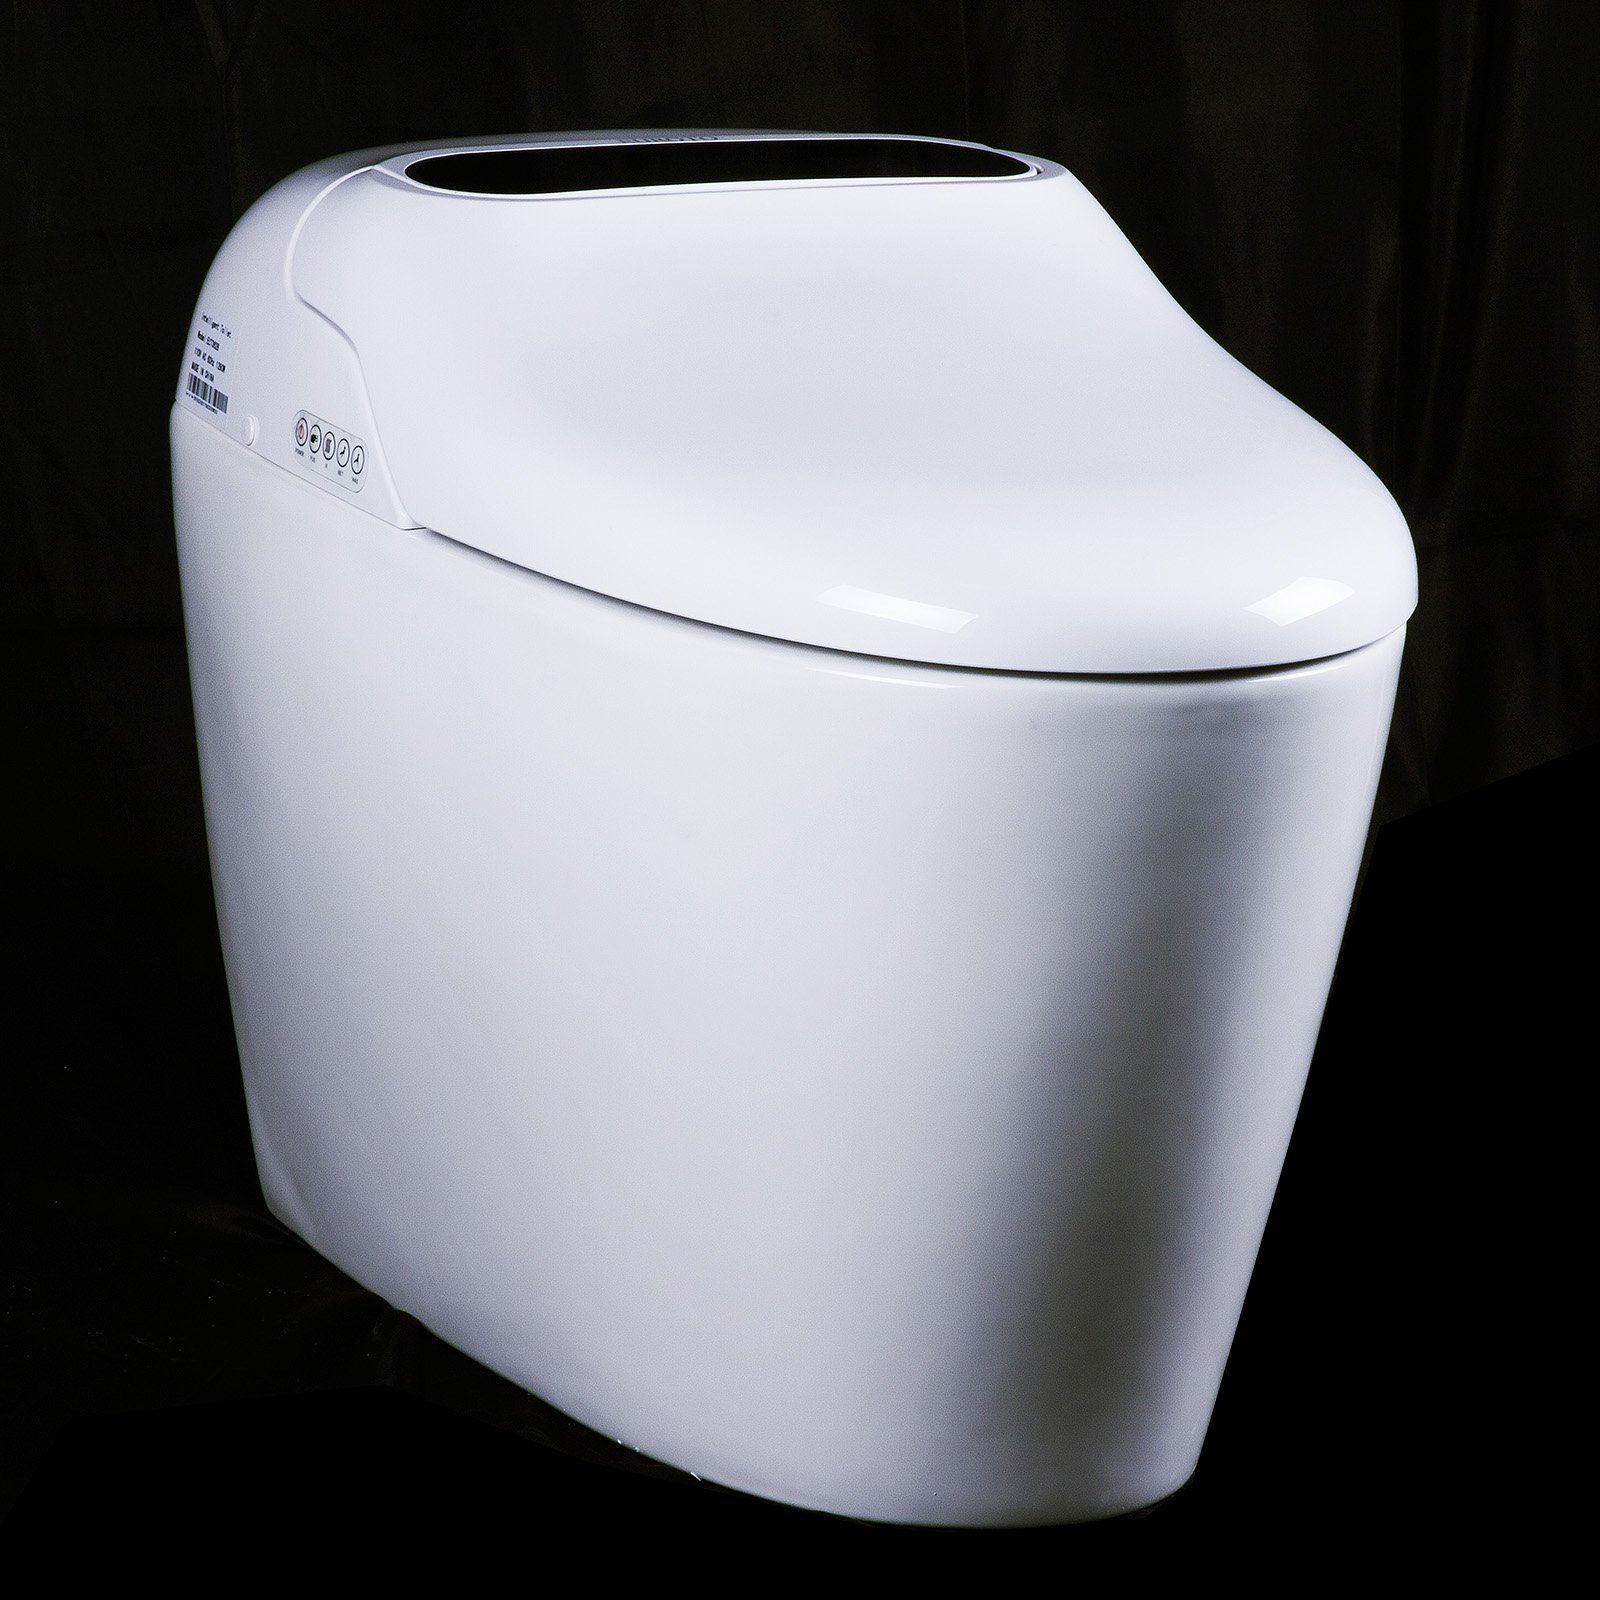 Euroto Luxury Smart Toilet One Piece Toilet with Soft Closing Heated Seat European Design Elongated for Bathroom Toilet Bowls, Toilets, and Toilet Seats by EUROTO (Image #2)